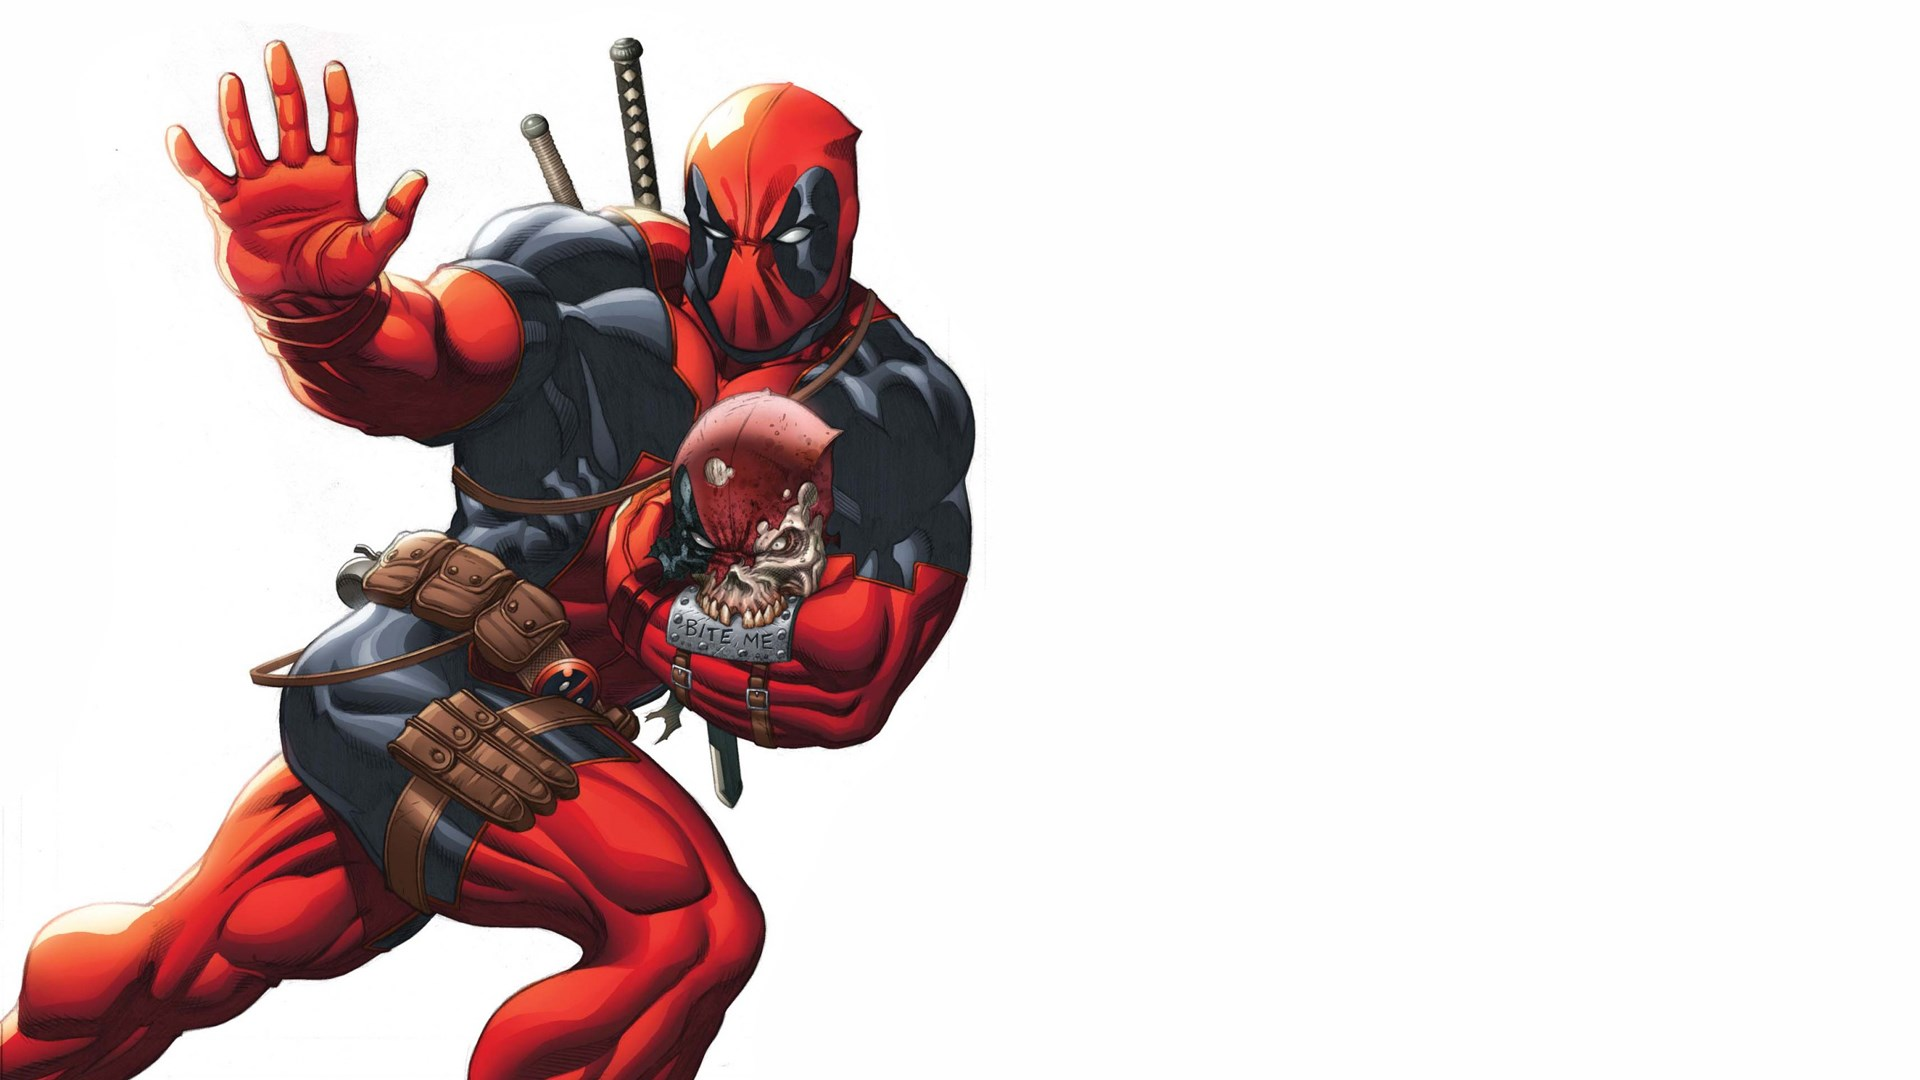 deadpool-backgrounds-hd-Twila-Bishop-1920x1080-wallpaper-wp3604697